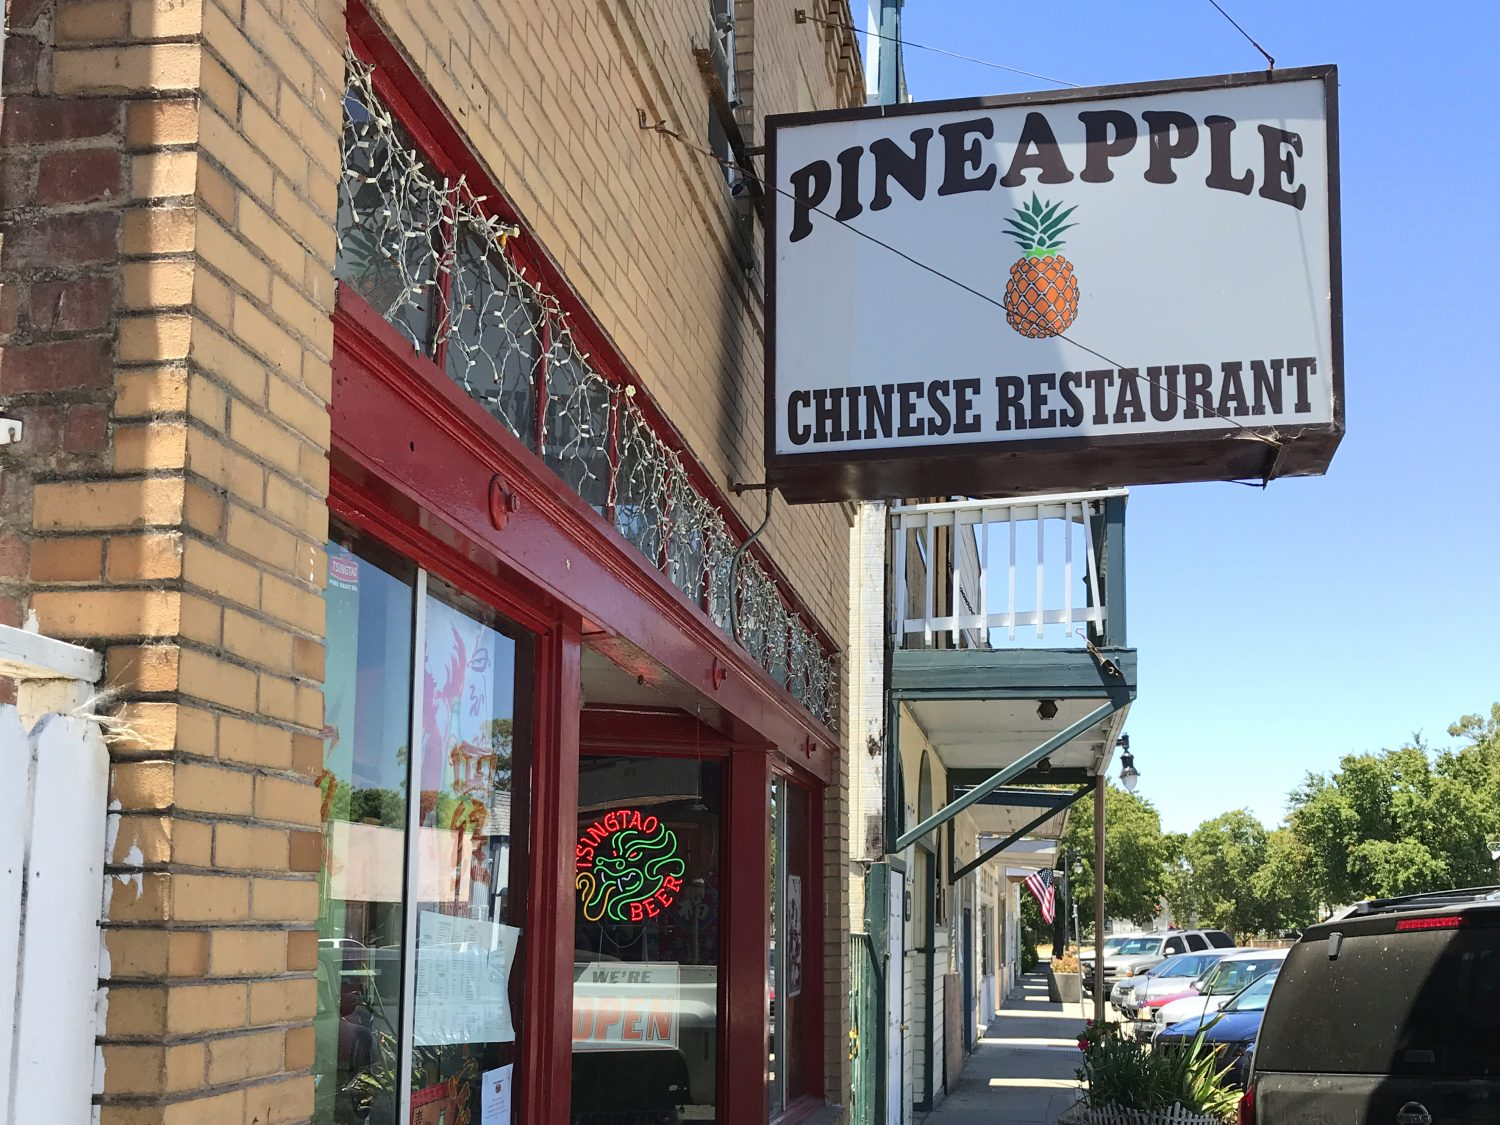 Isleton, CA, Pineapple Chinese Restaurant, Chinese food, Chinese cuisine, restaurants, food, lunch, dinner, take out, dine in